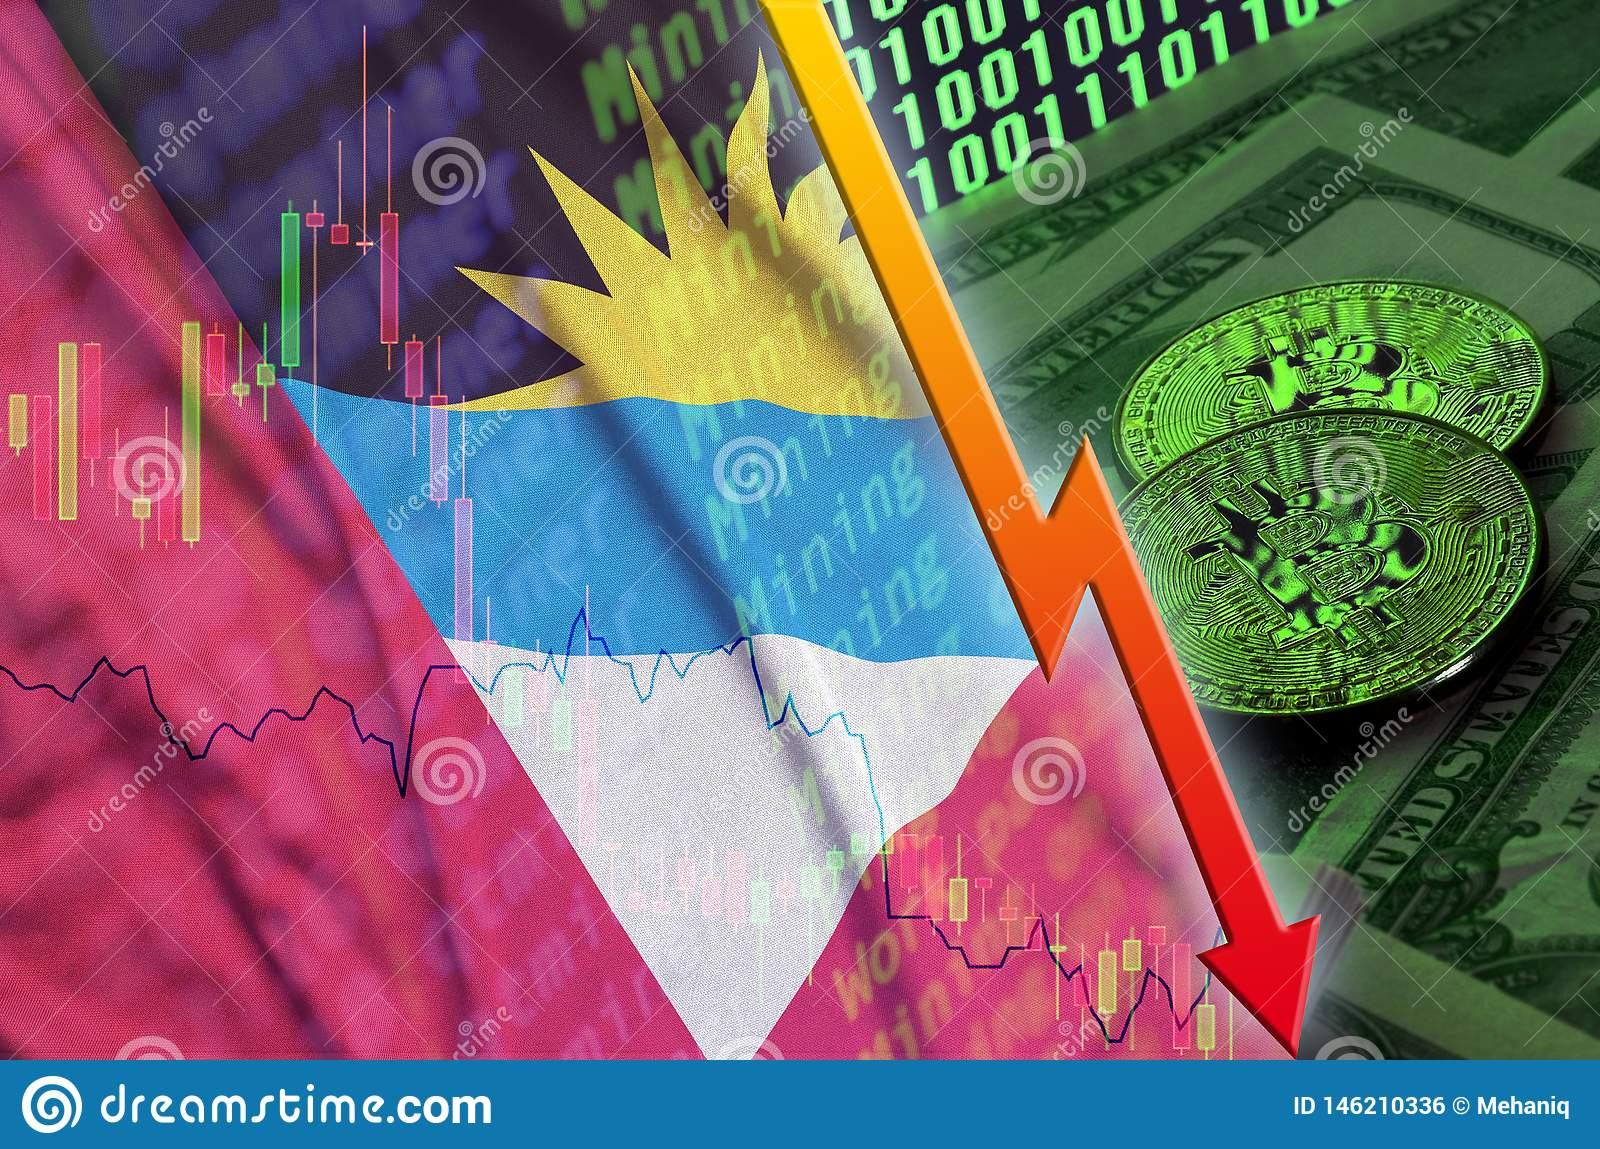 Antigua and Barbuda flag and cryptocurrency falling trend with two bitcoins on dollar bills and binary code display